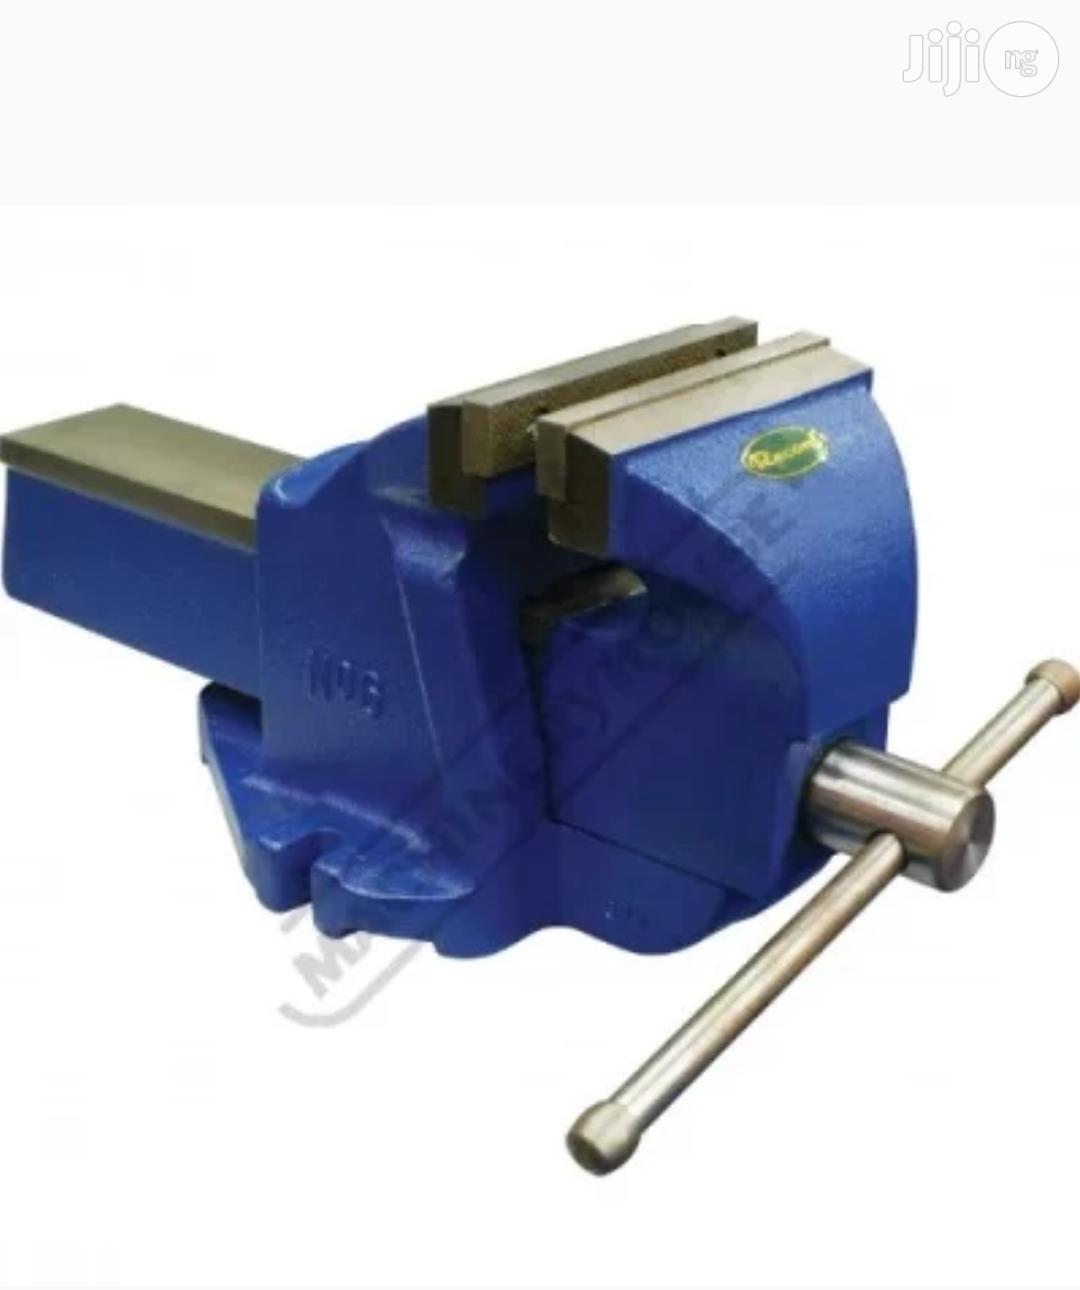 """Archive: 5"""" Light Duty Industrial Bench Vice"""